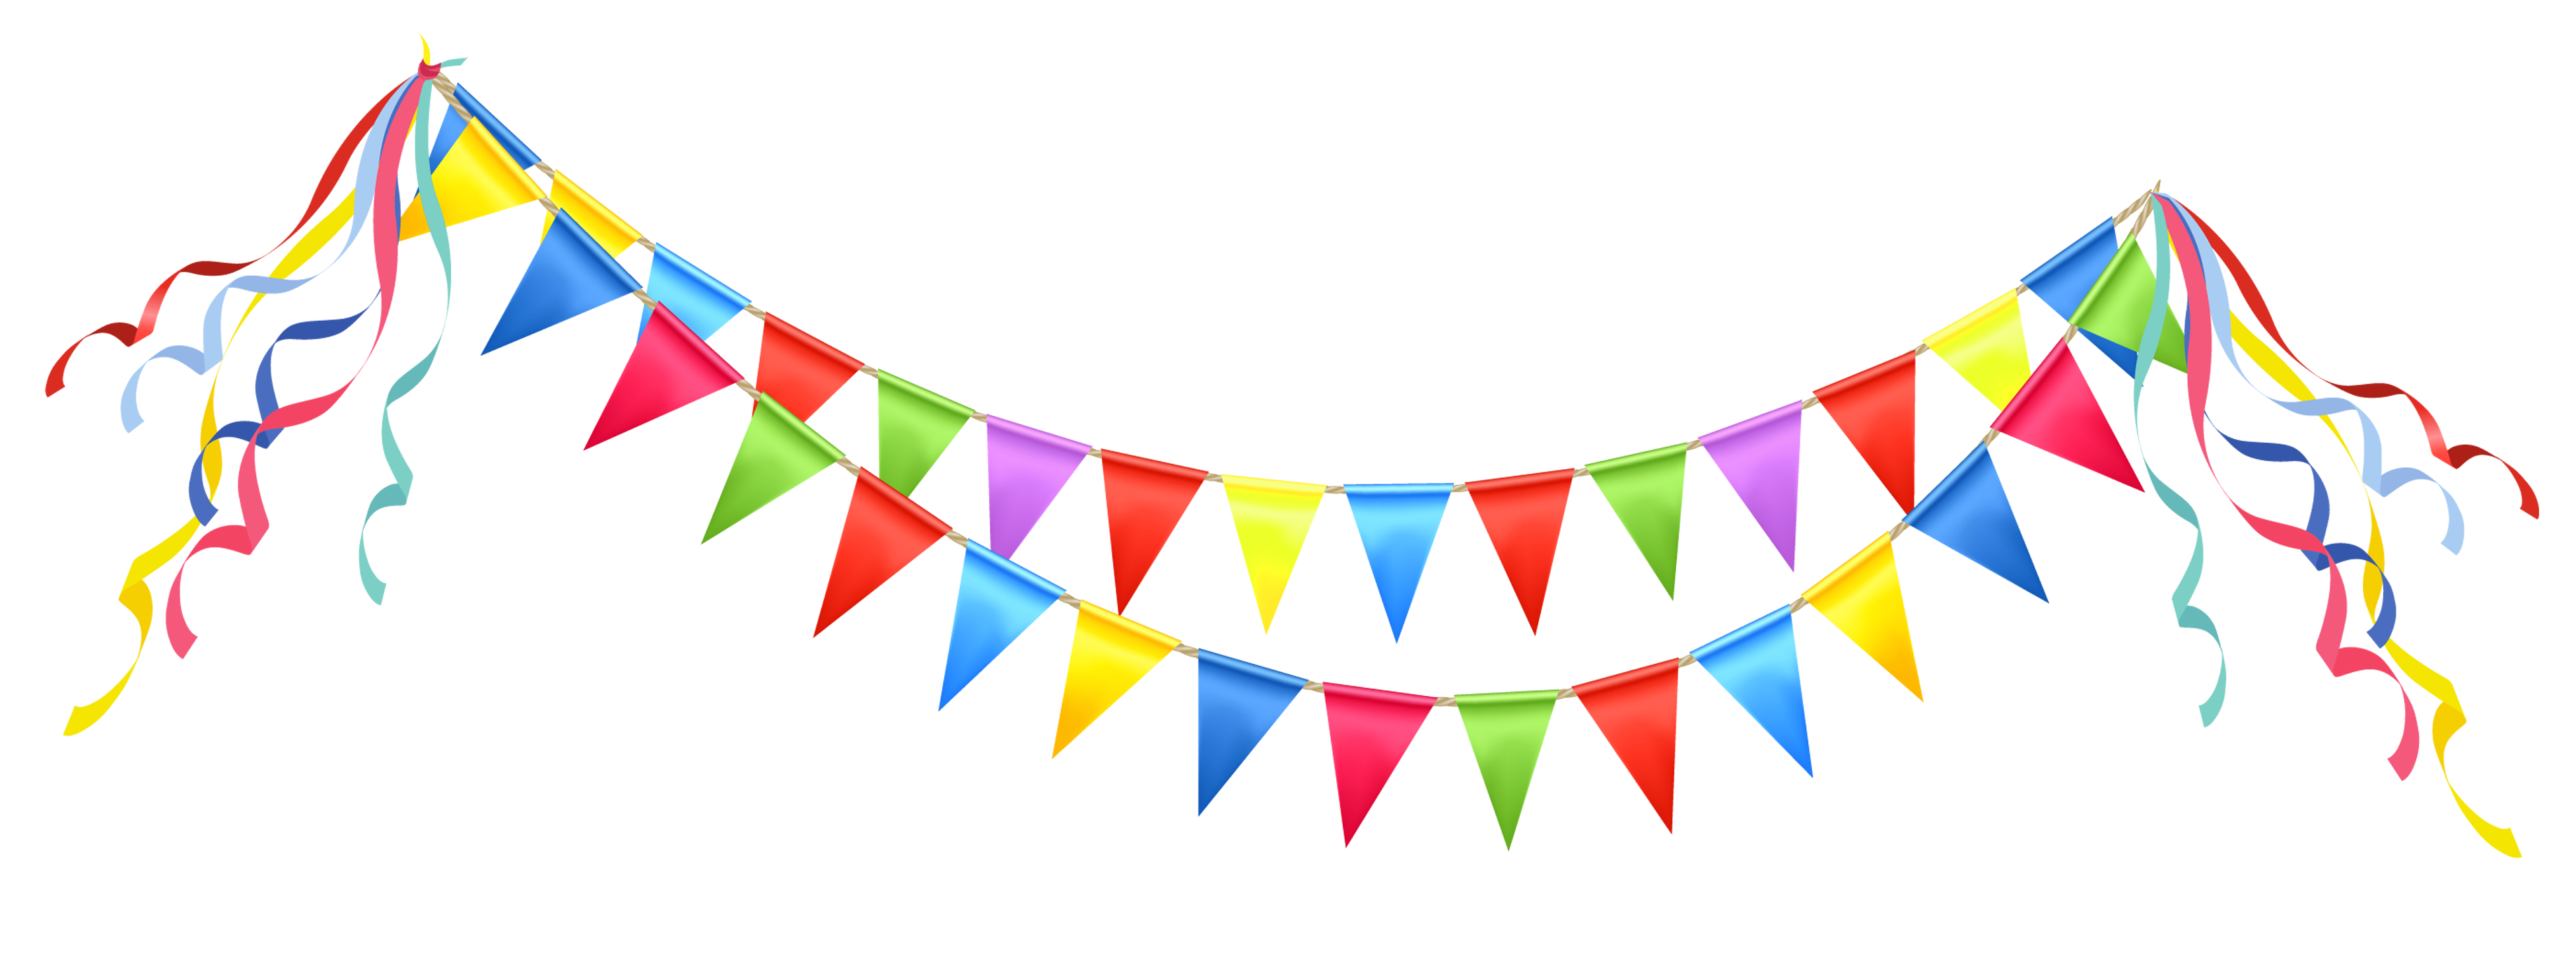 Fiesta flags png. Celebrate banner clipart april